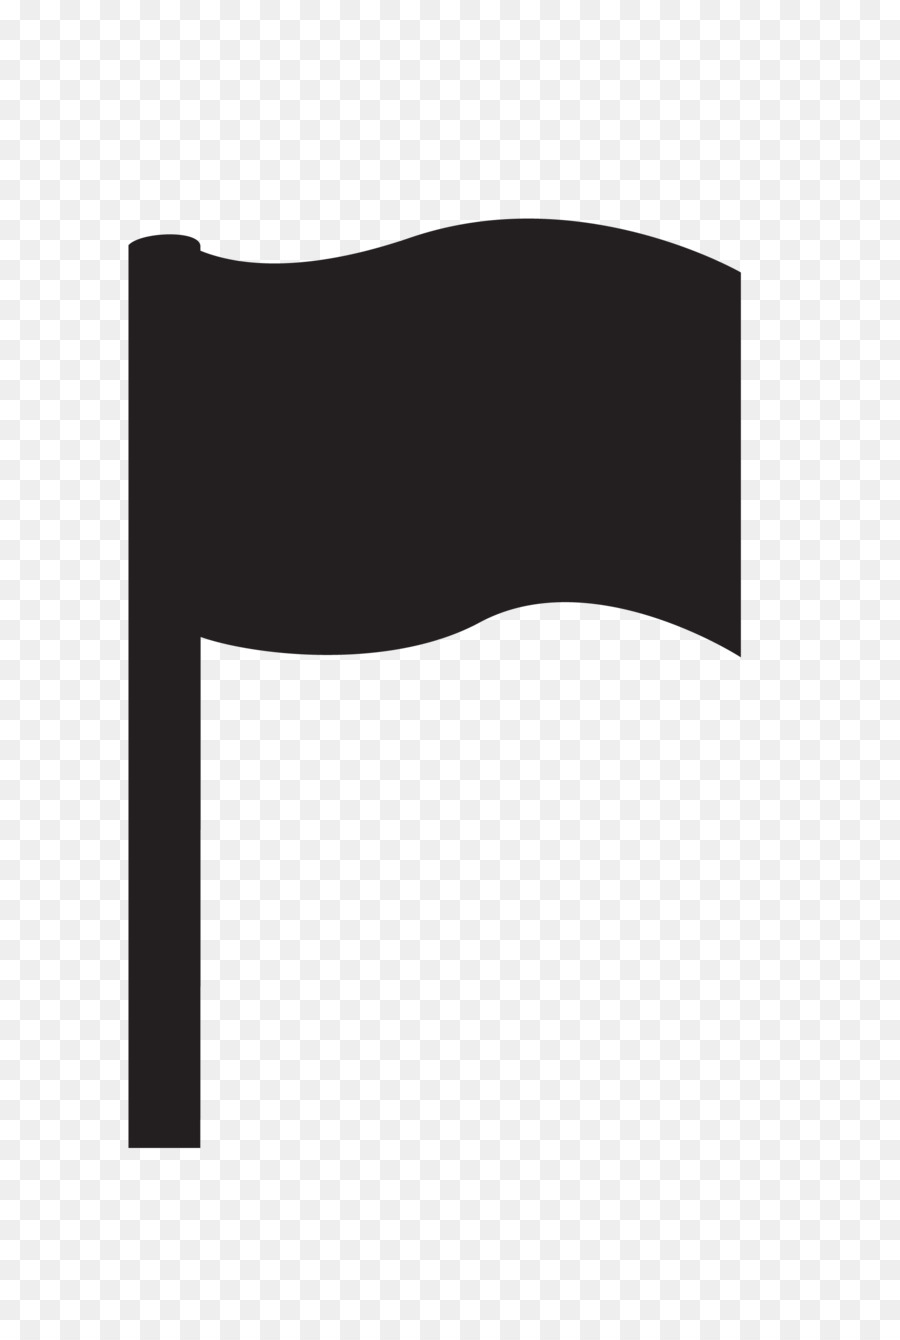 900x1340 Black And White Flag